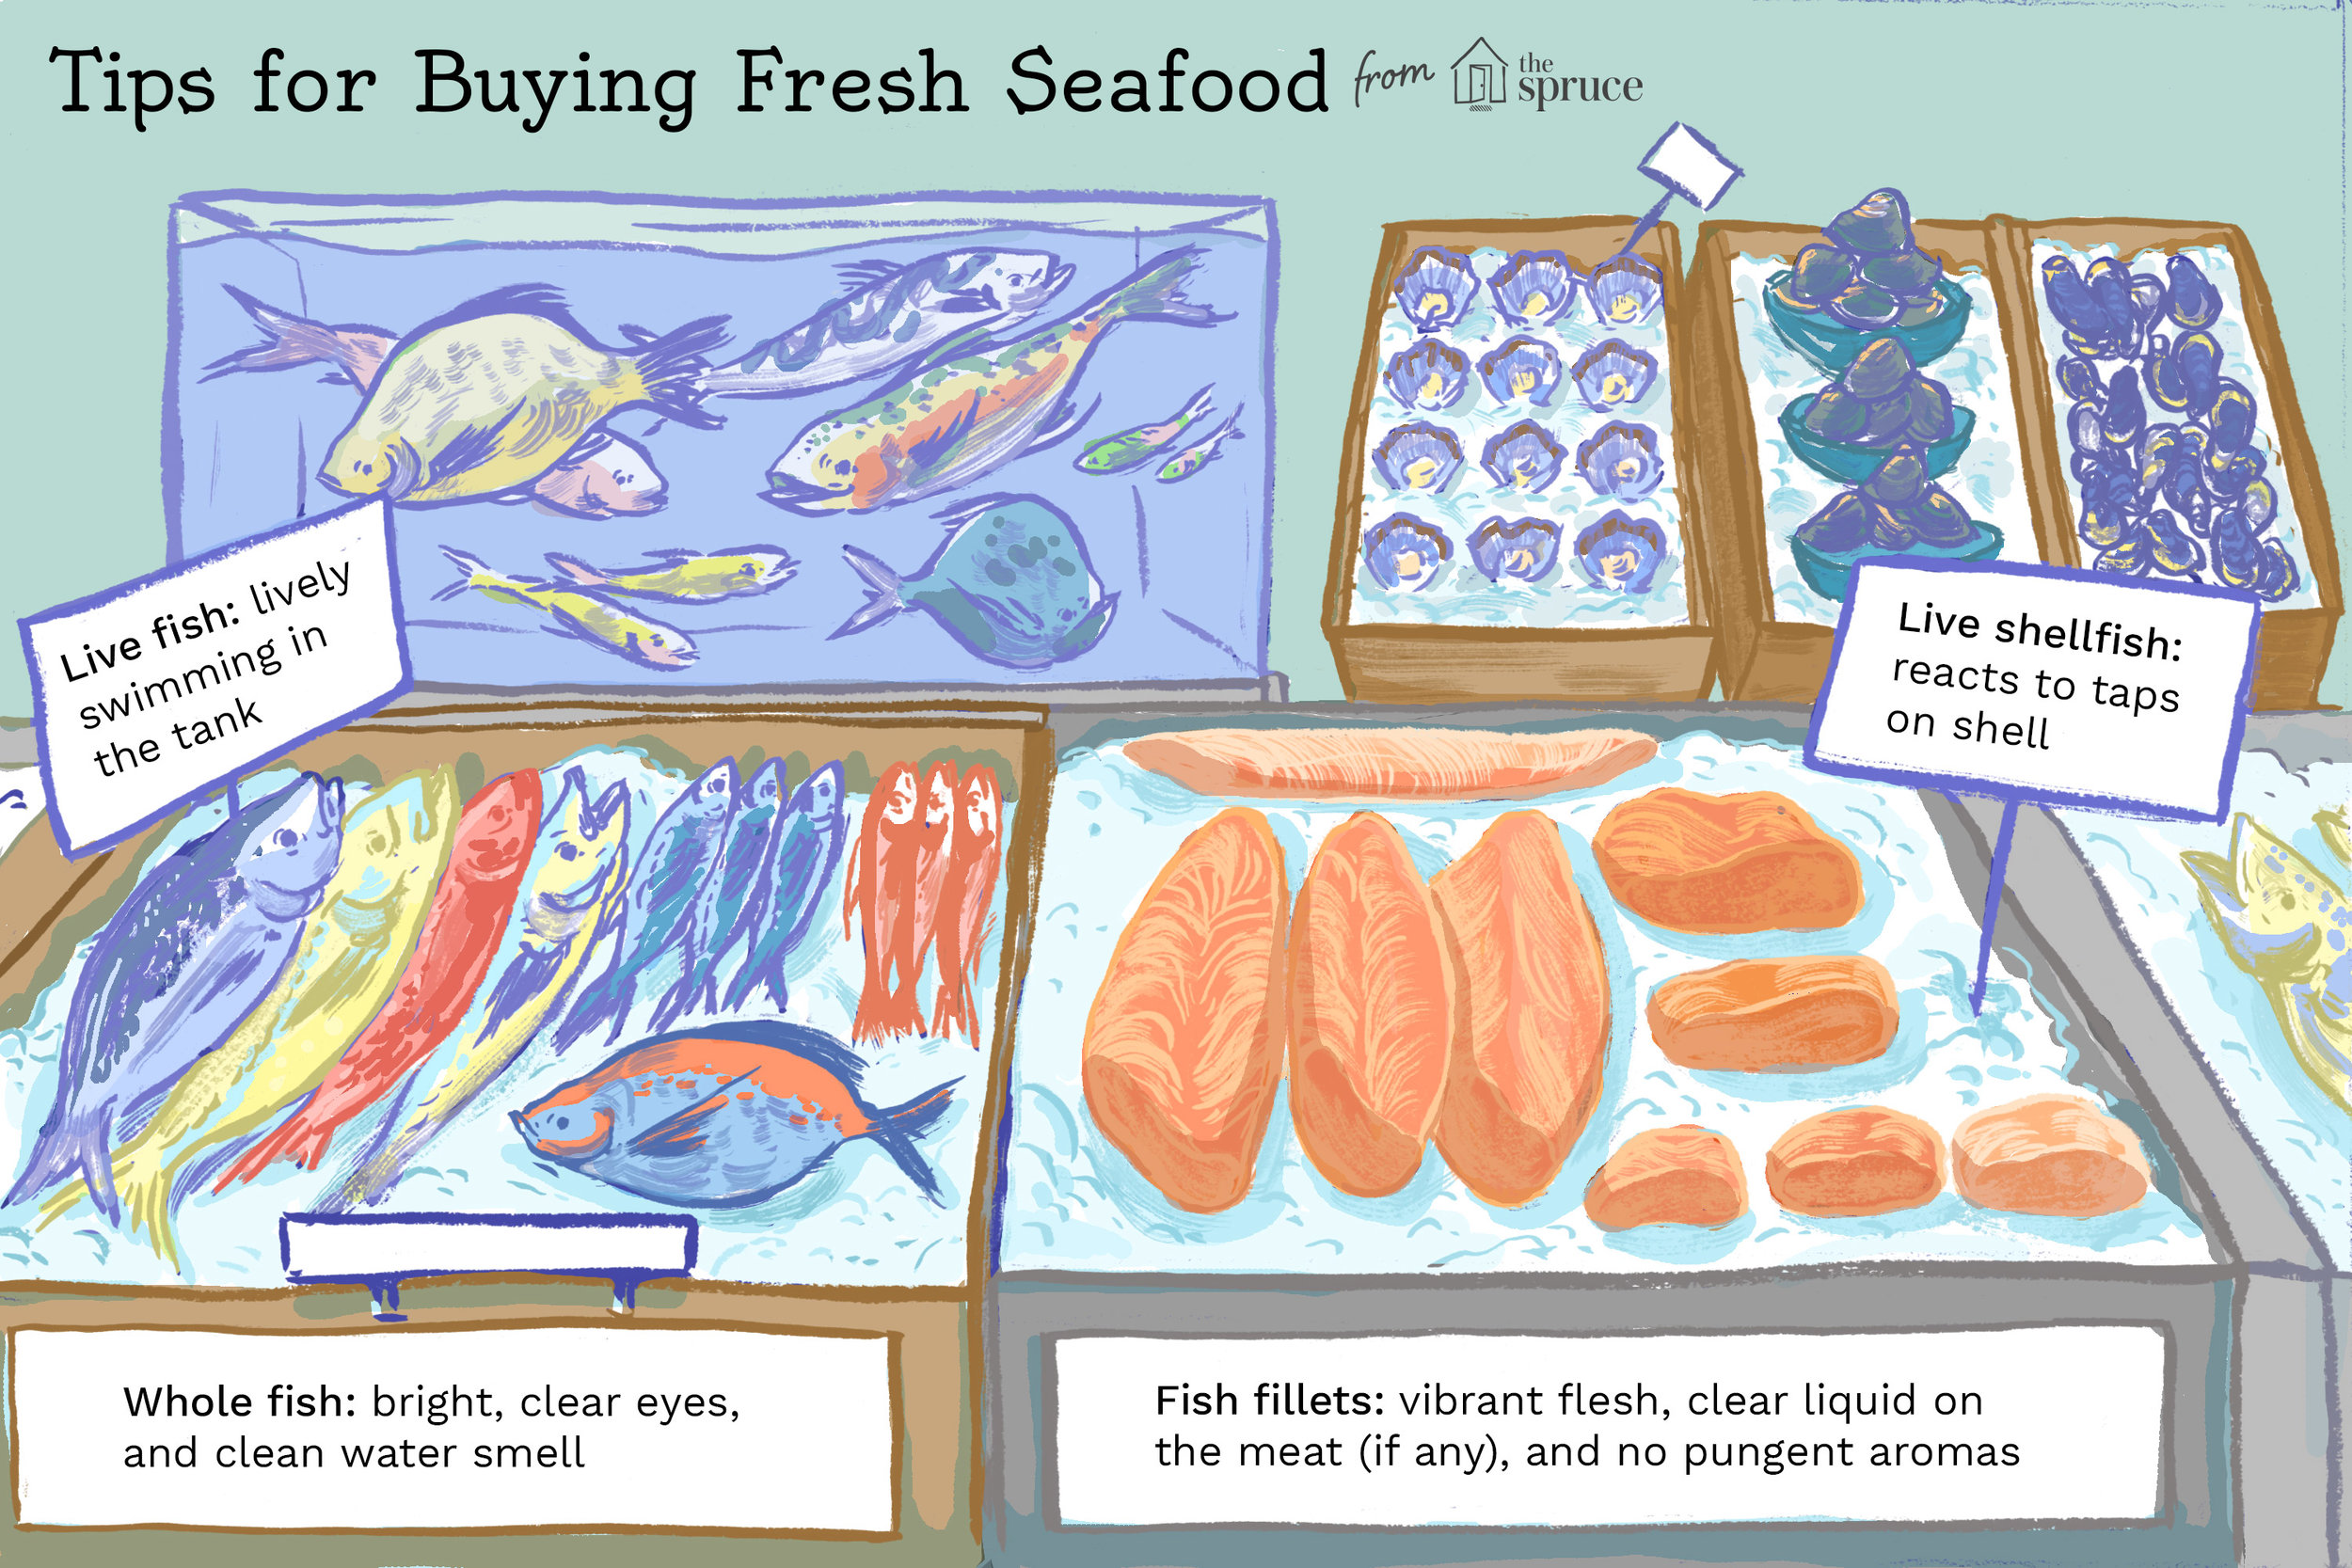 tips-for-buying-fresh-seafood-1300628_final-2-v6.jpg